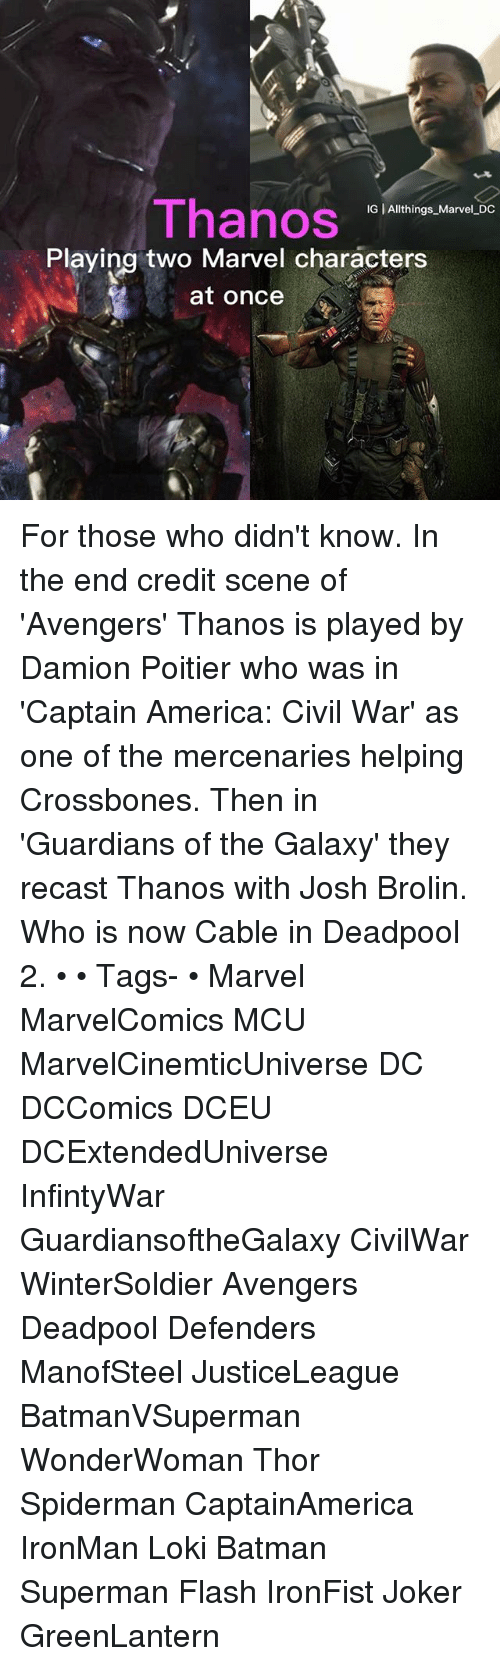 Captain America: Civil War: Thanos  IG | Allthings Marvel DC  Playing two Marvel characters  at once For those who didn't know. In the end credit scene of 'Avengers' Thanos is played by Damion Poitier who was in 'Captain America: Civil War' as one of the mercenaries helping Crossbones. Then in 'Guardians of the Galaxy' they recast Thanos with Josh Brolin. Who is now Cable in Deadpool 2. • • Tags- • Marvel MarvelComics MCU MarvelCinemticUniverse DC DCComics DCEU DCExtendedUniverse InfintyWar GuardiansoftheGalaxy CivilWar WinterSoldier Avengers Deadpool Defenders ManofSteel JusticeLeague BatmanVSuperman WonderWoman Thor Spiderman CaptainAmerica IronMan Loki Batman Superman Flash IronFist Joker GreenLantern